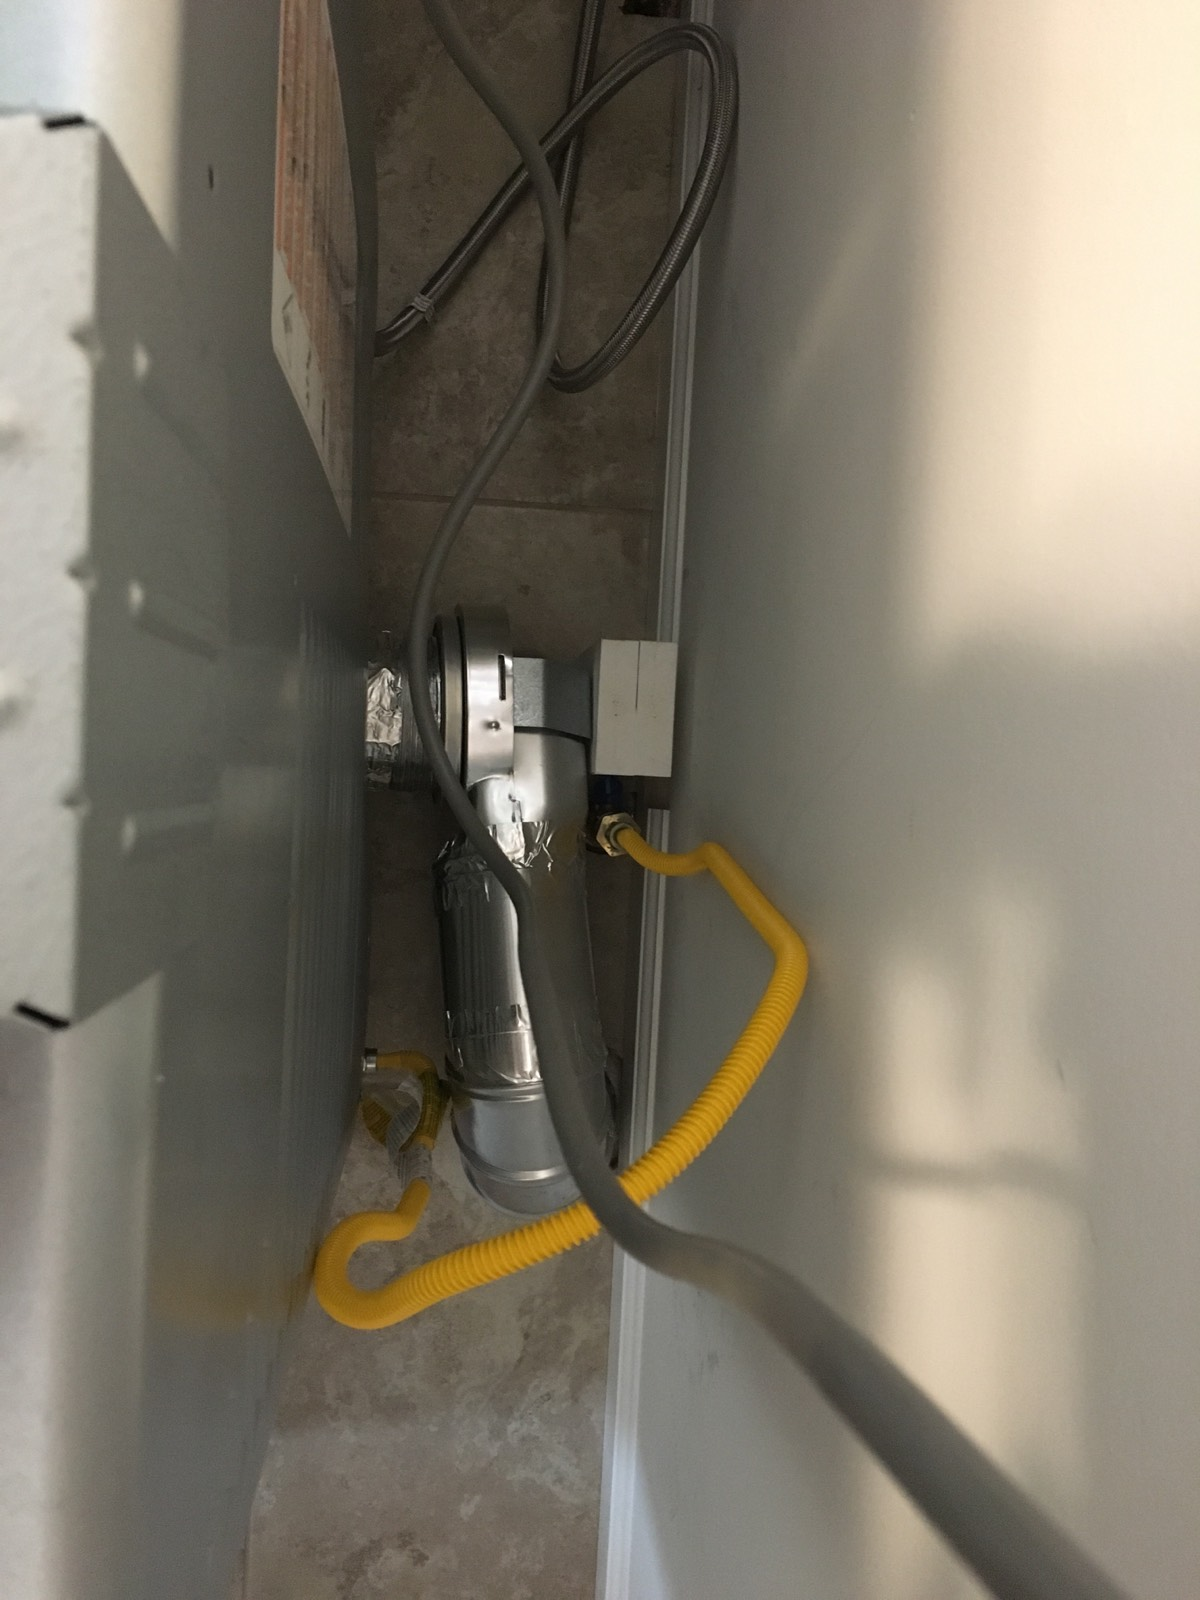 After photo of MagVent MV-90 installation with short, clear and unobstructed vent path.